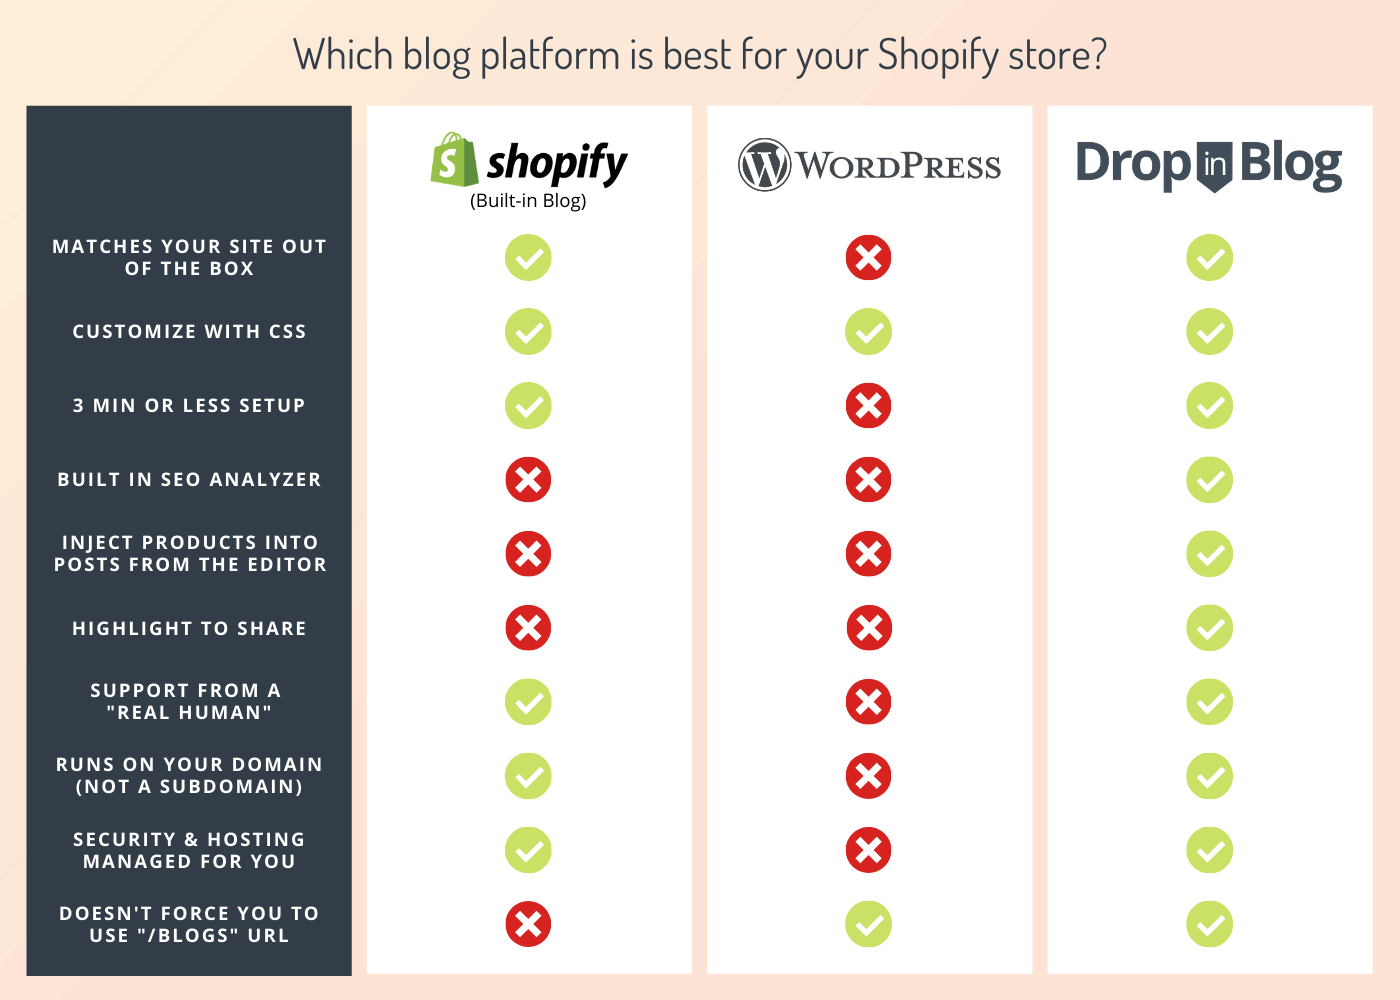 Which blog platform is best for your Shopify Store?